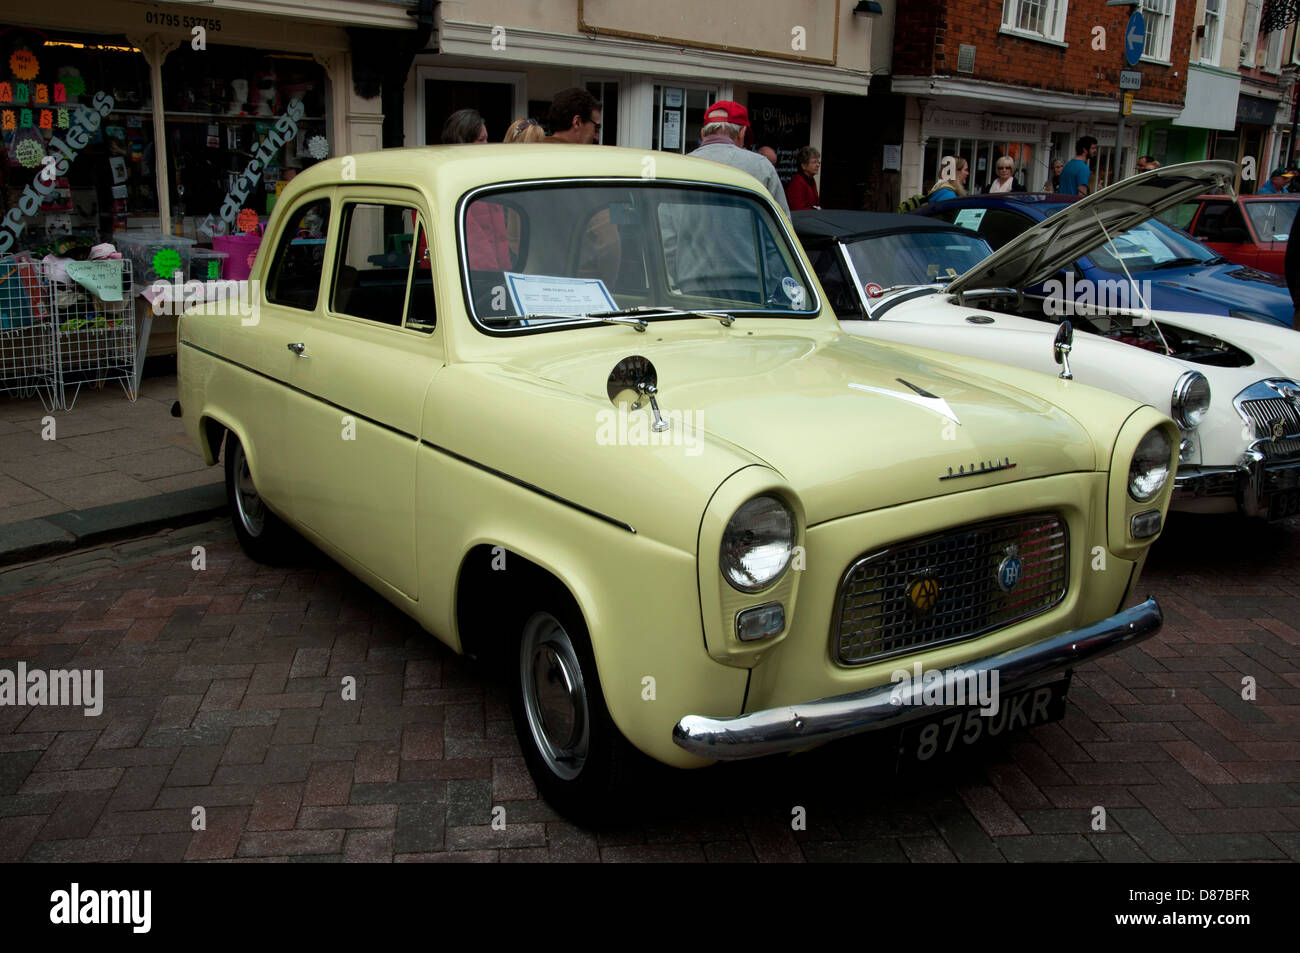 Transport motor show at faversham in Kent all types of classic ...